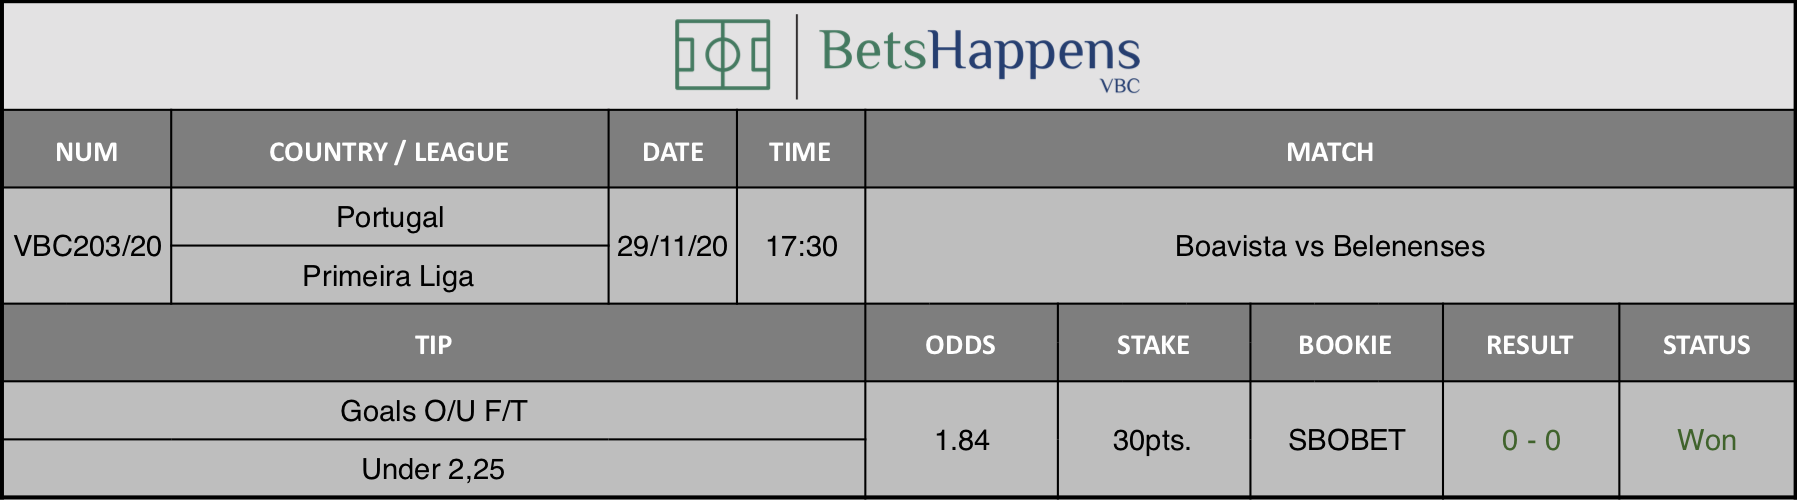 Results of our tip for the Boavista vs Belenenses match where Goals O/U F/T Under 2,25 is recommended.